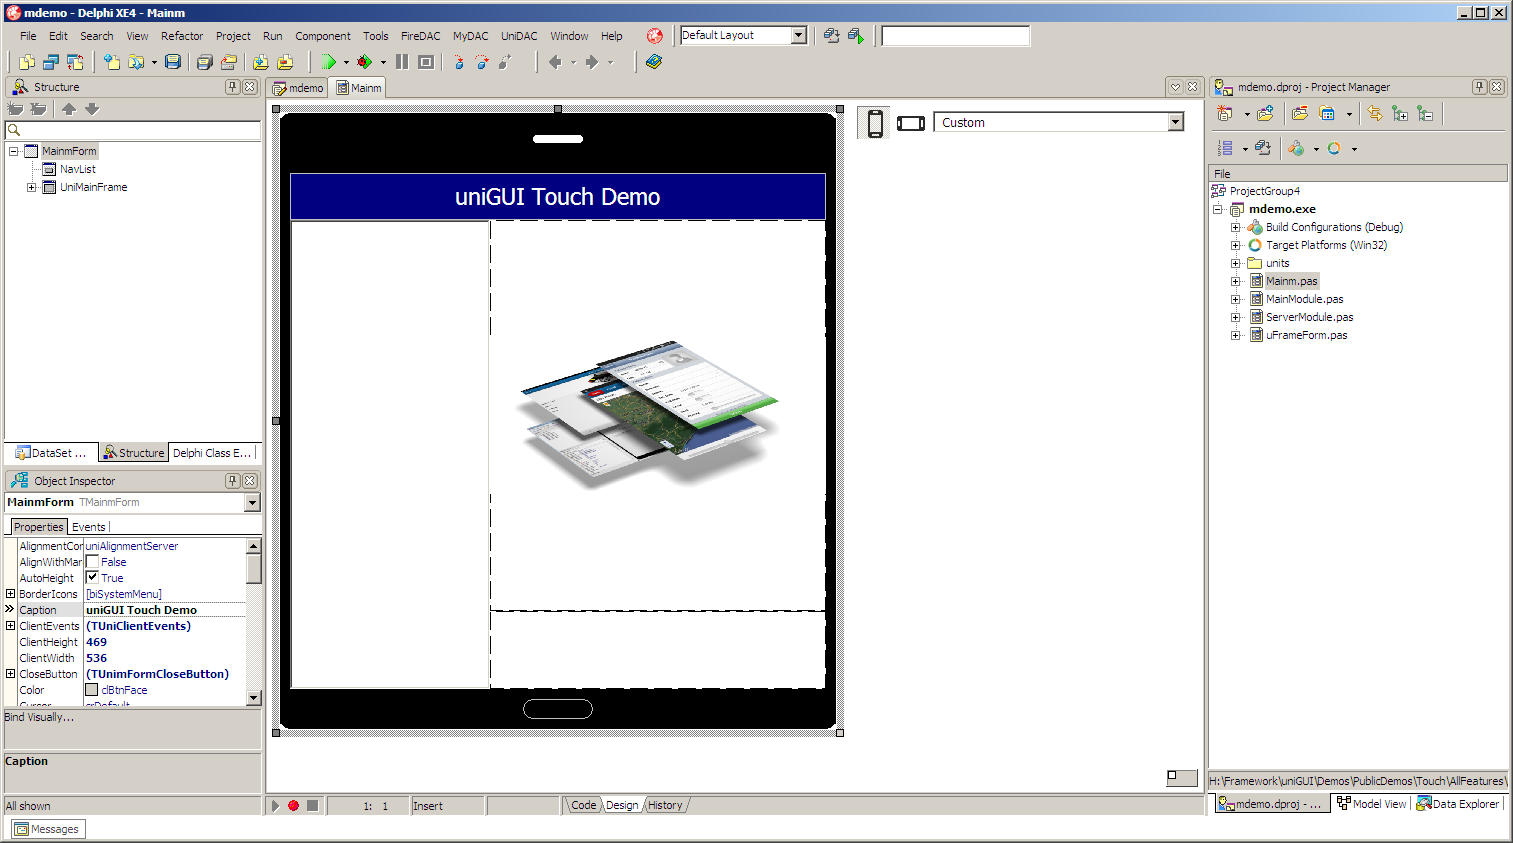 uniGUI Mobile web application in IDE